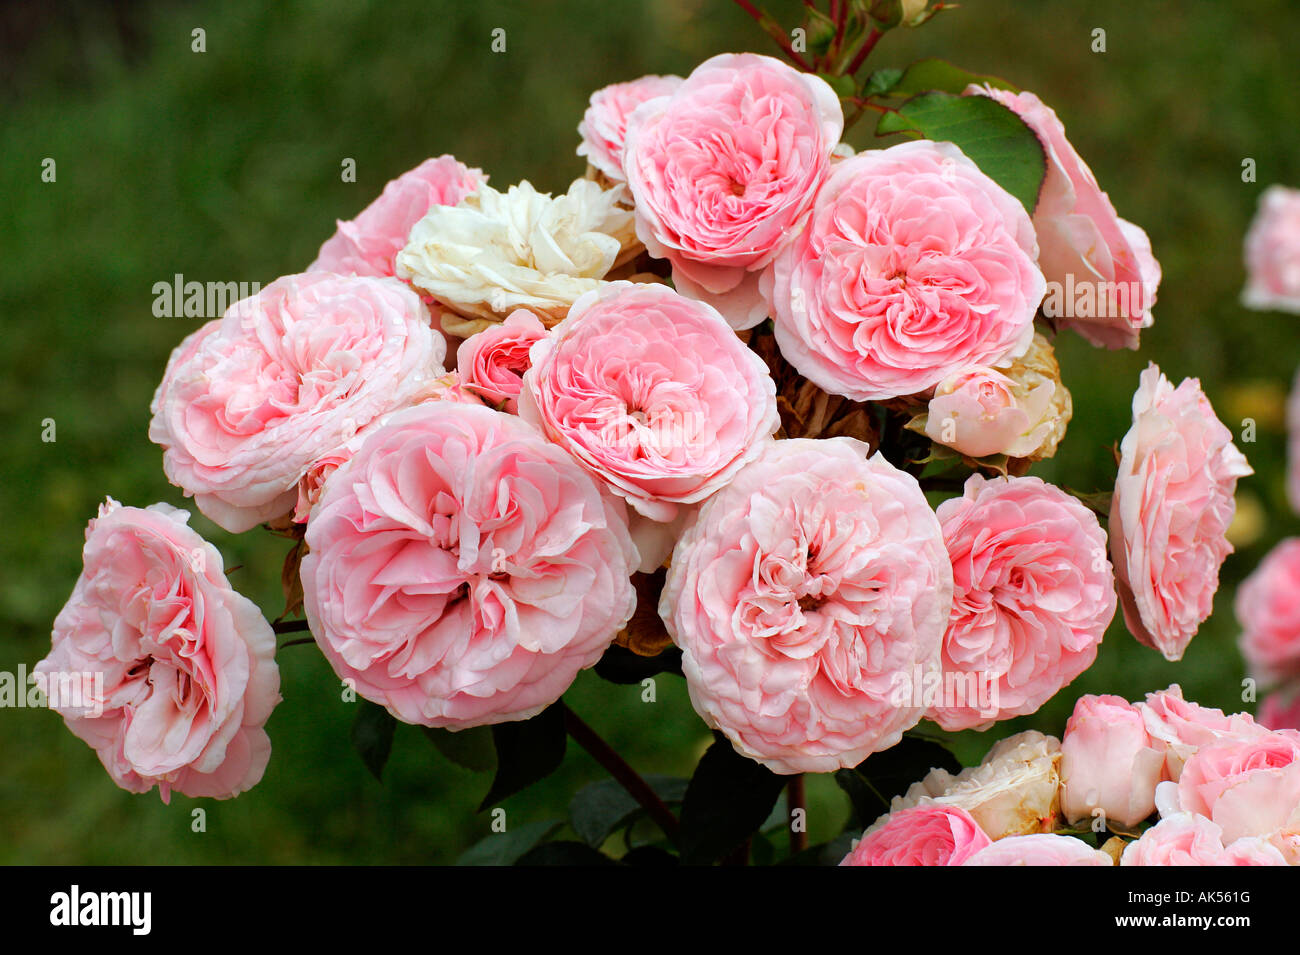 Roses In Garden: Rose 'maria Theresia' Stock Photo, Royalty Free Image